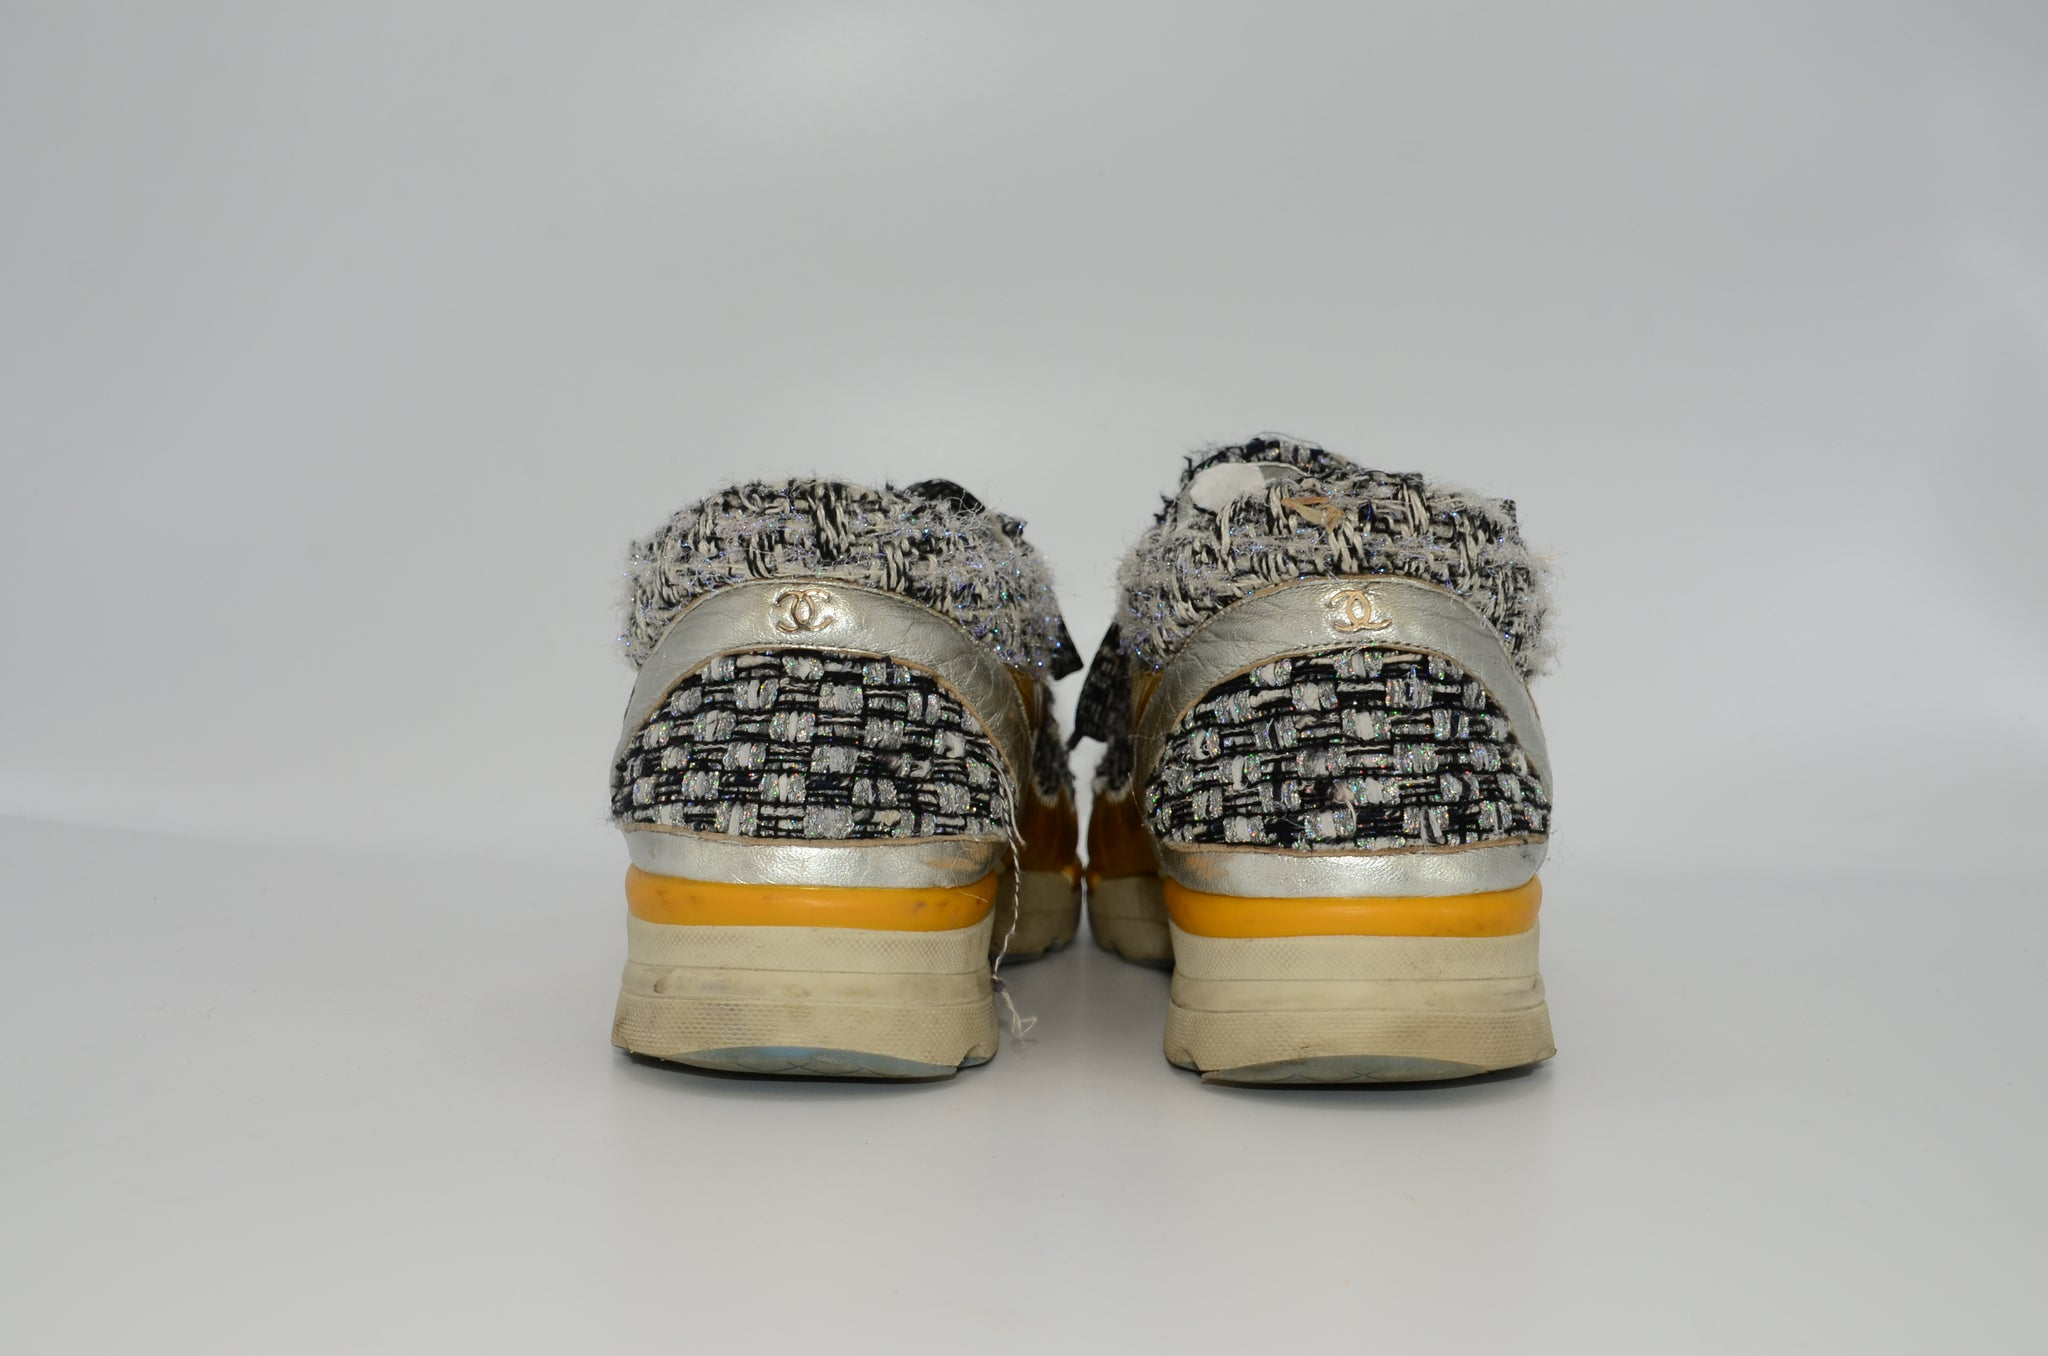 Chanel Tweed Trainer 39 - Iconics Preloved Luxury